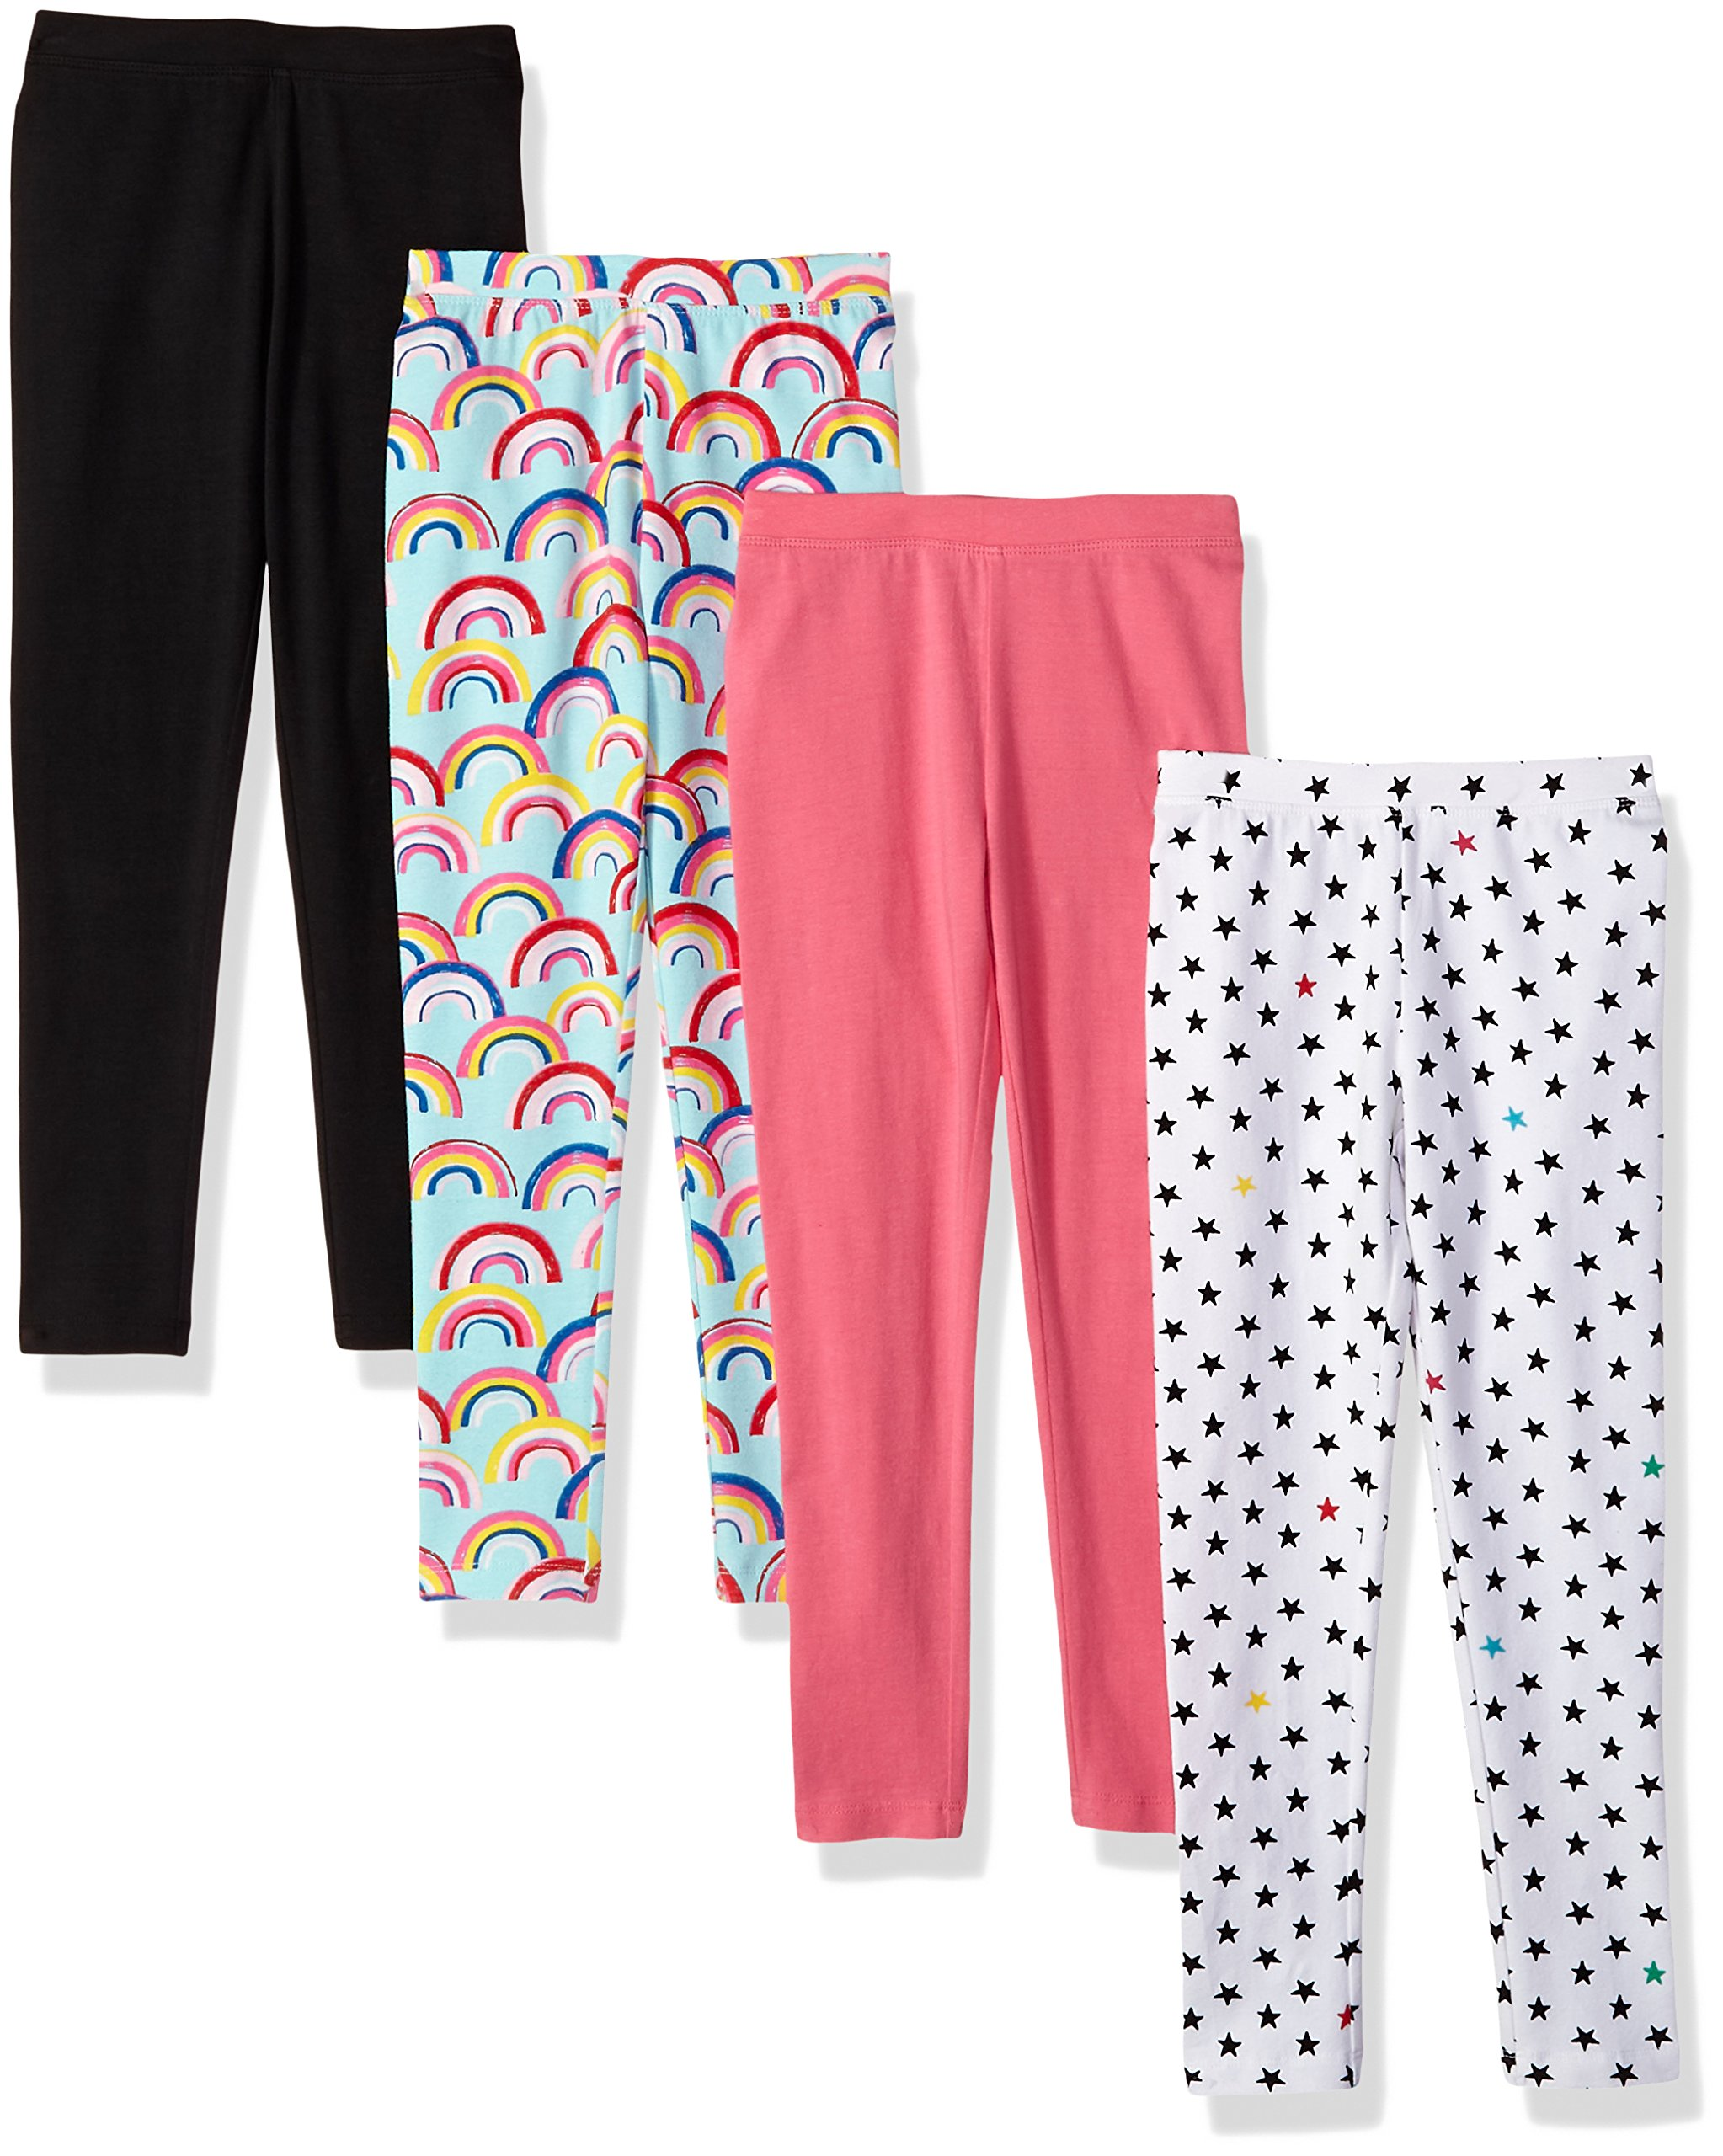 Spotted Zebra Little Girls' 4-Pack Leggings, Rainbows/Stars, Small (6-7)